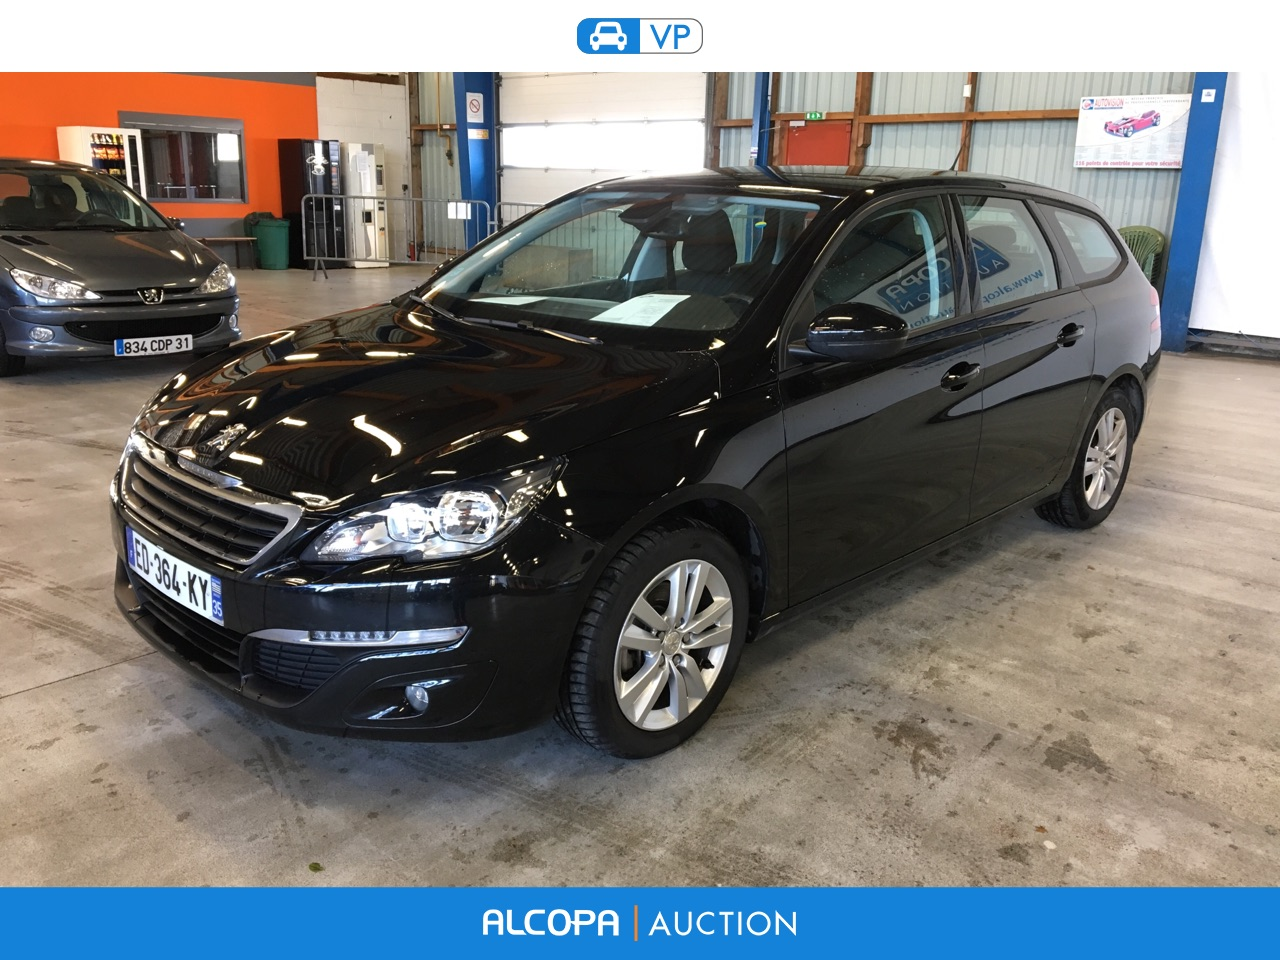 peugeot 308 308 sw 1 6 bluehdi 100ch active business s s rennes alcopa auction. Black Bedroom Furniture Sets. Home Design Ideas